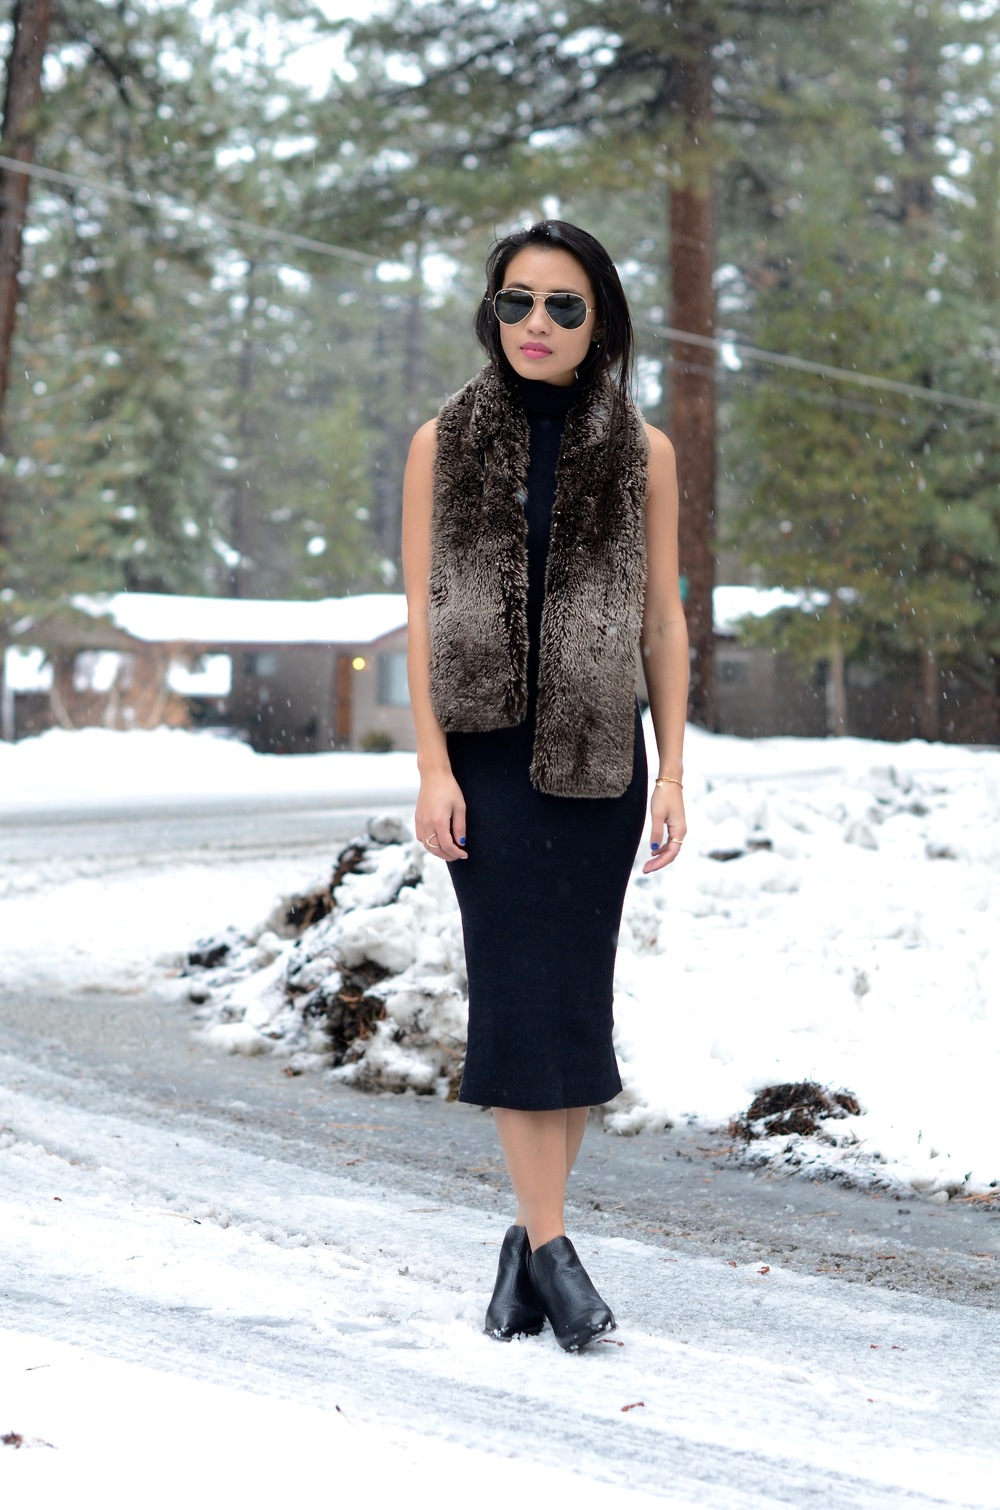 Just Goh With It-Travel-California-Lake-Tahoe-Zara-Turtleneck-Knit-Dress-Fur-Scarf-Massimo-Dutti-Ankle-Boots-3.jpg